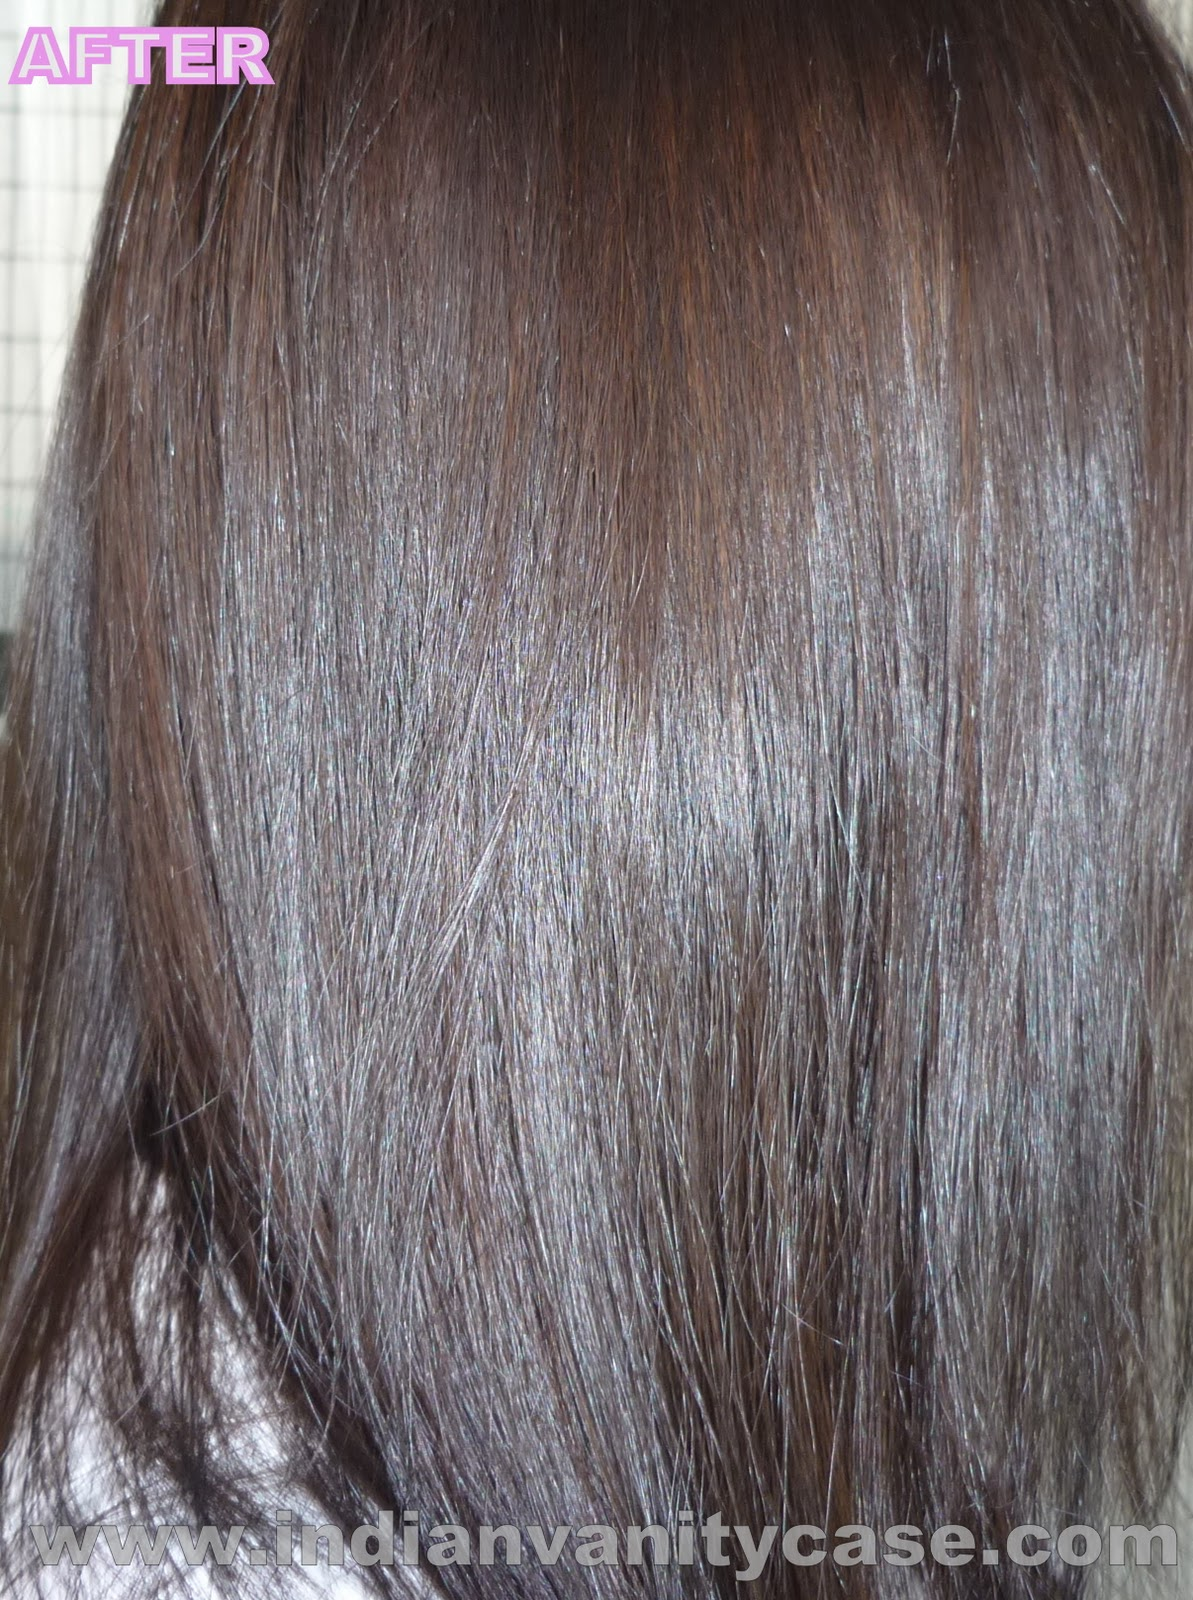 Lighten Brown Hair Using Wella  Dark Brown Hairs